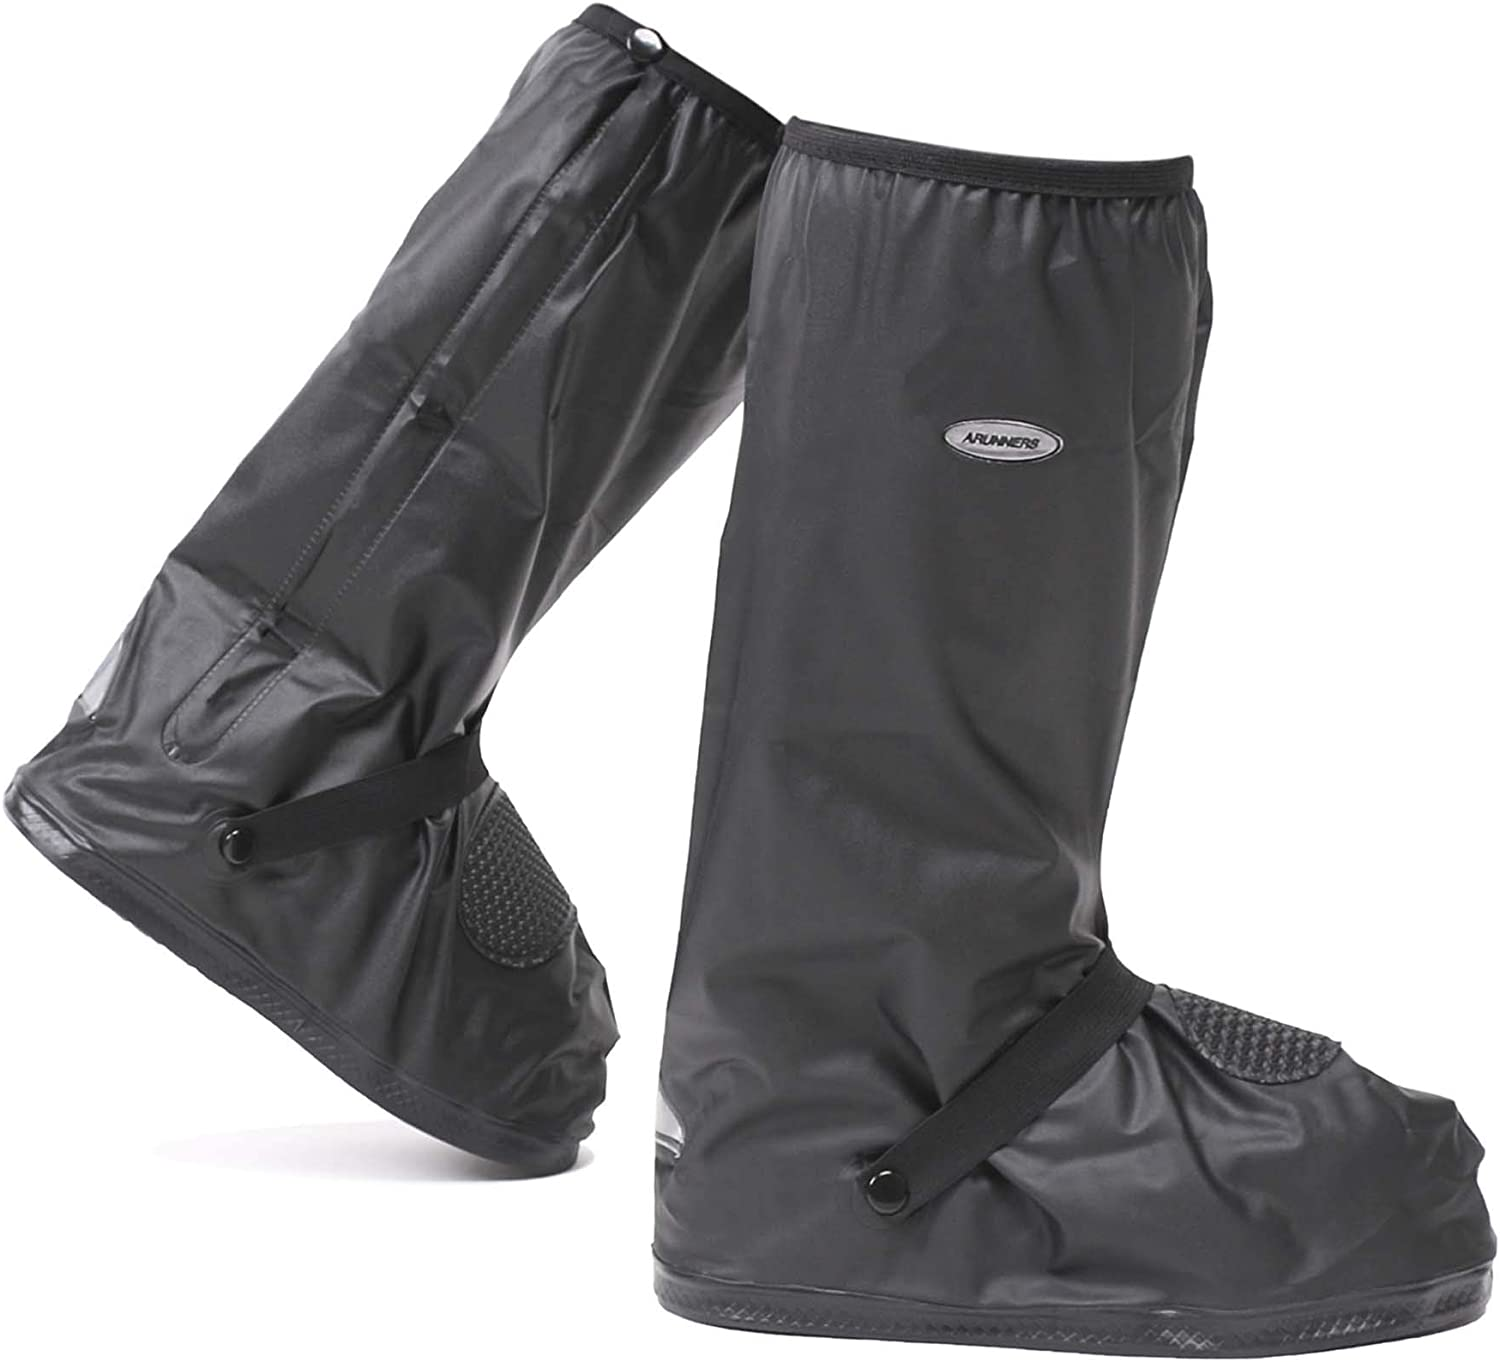 Life-C Rain Snow Beauty products Waterproof Shoe Recommended Motorcycle Women Boots M Covers